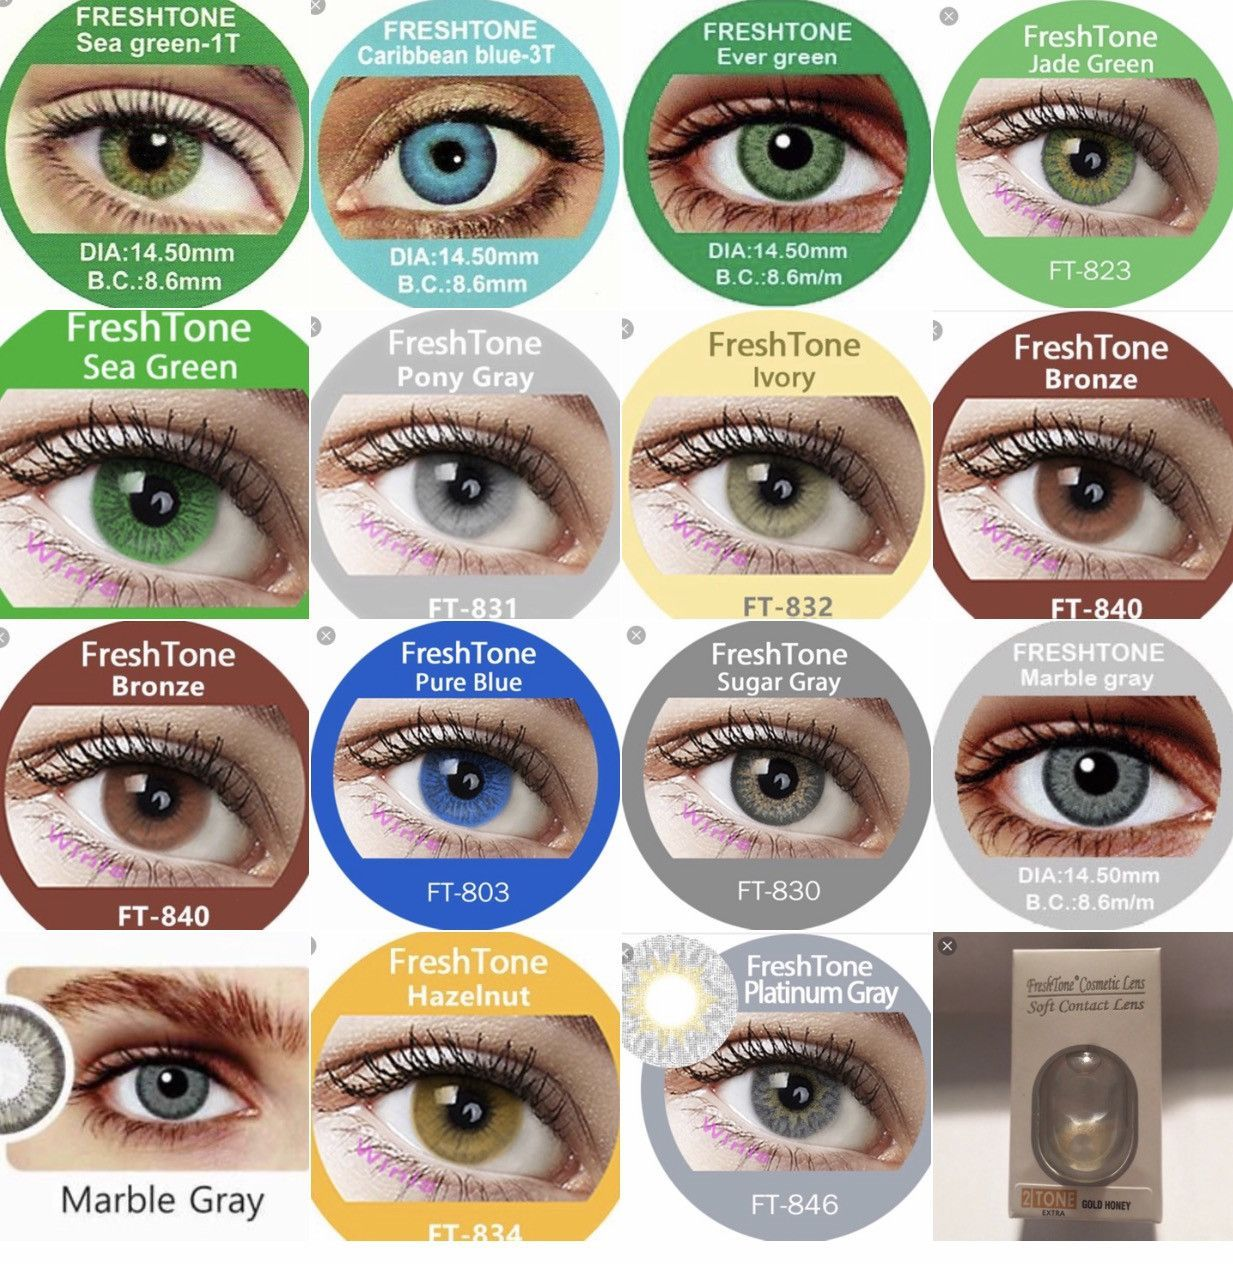 Freshtone New Colors And Non Prescription Contacts Reusable Up To 3 Months With Proper Care Plea Contact Lenses Colored Eye Color Chart Green Contacts Lenses